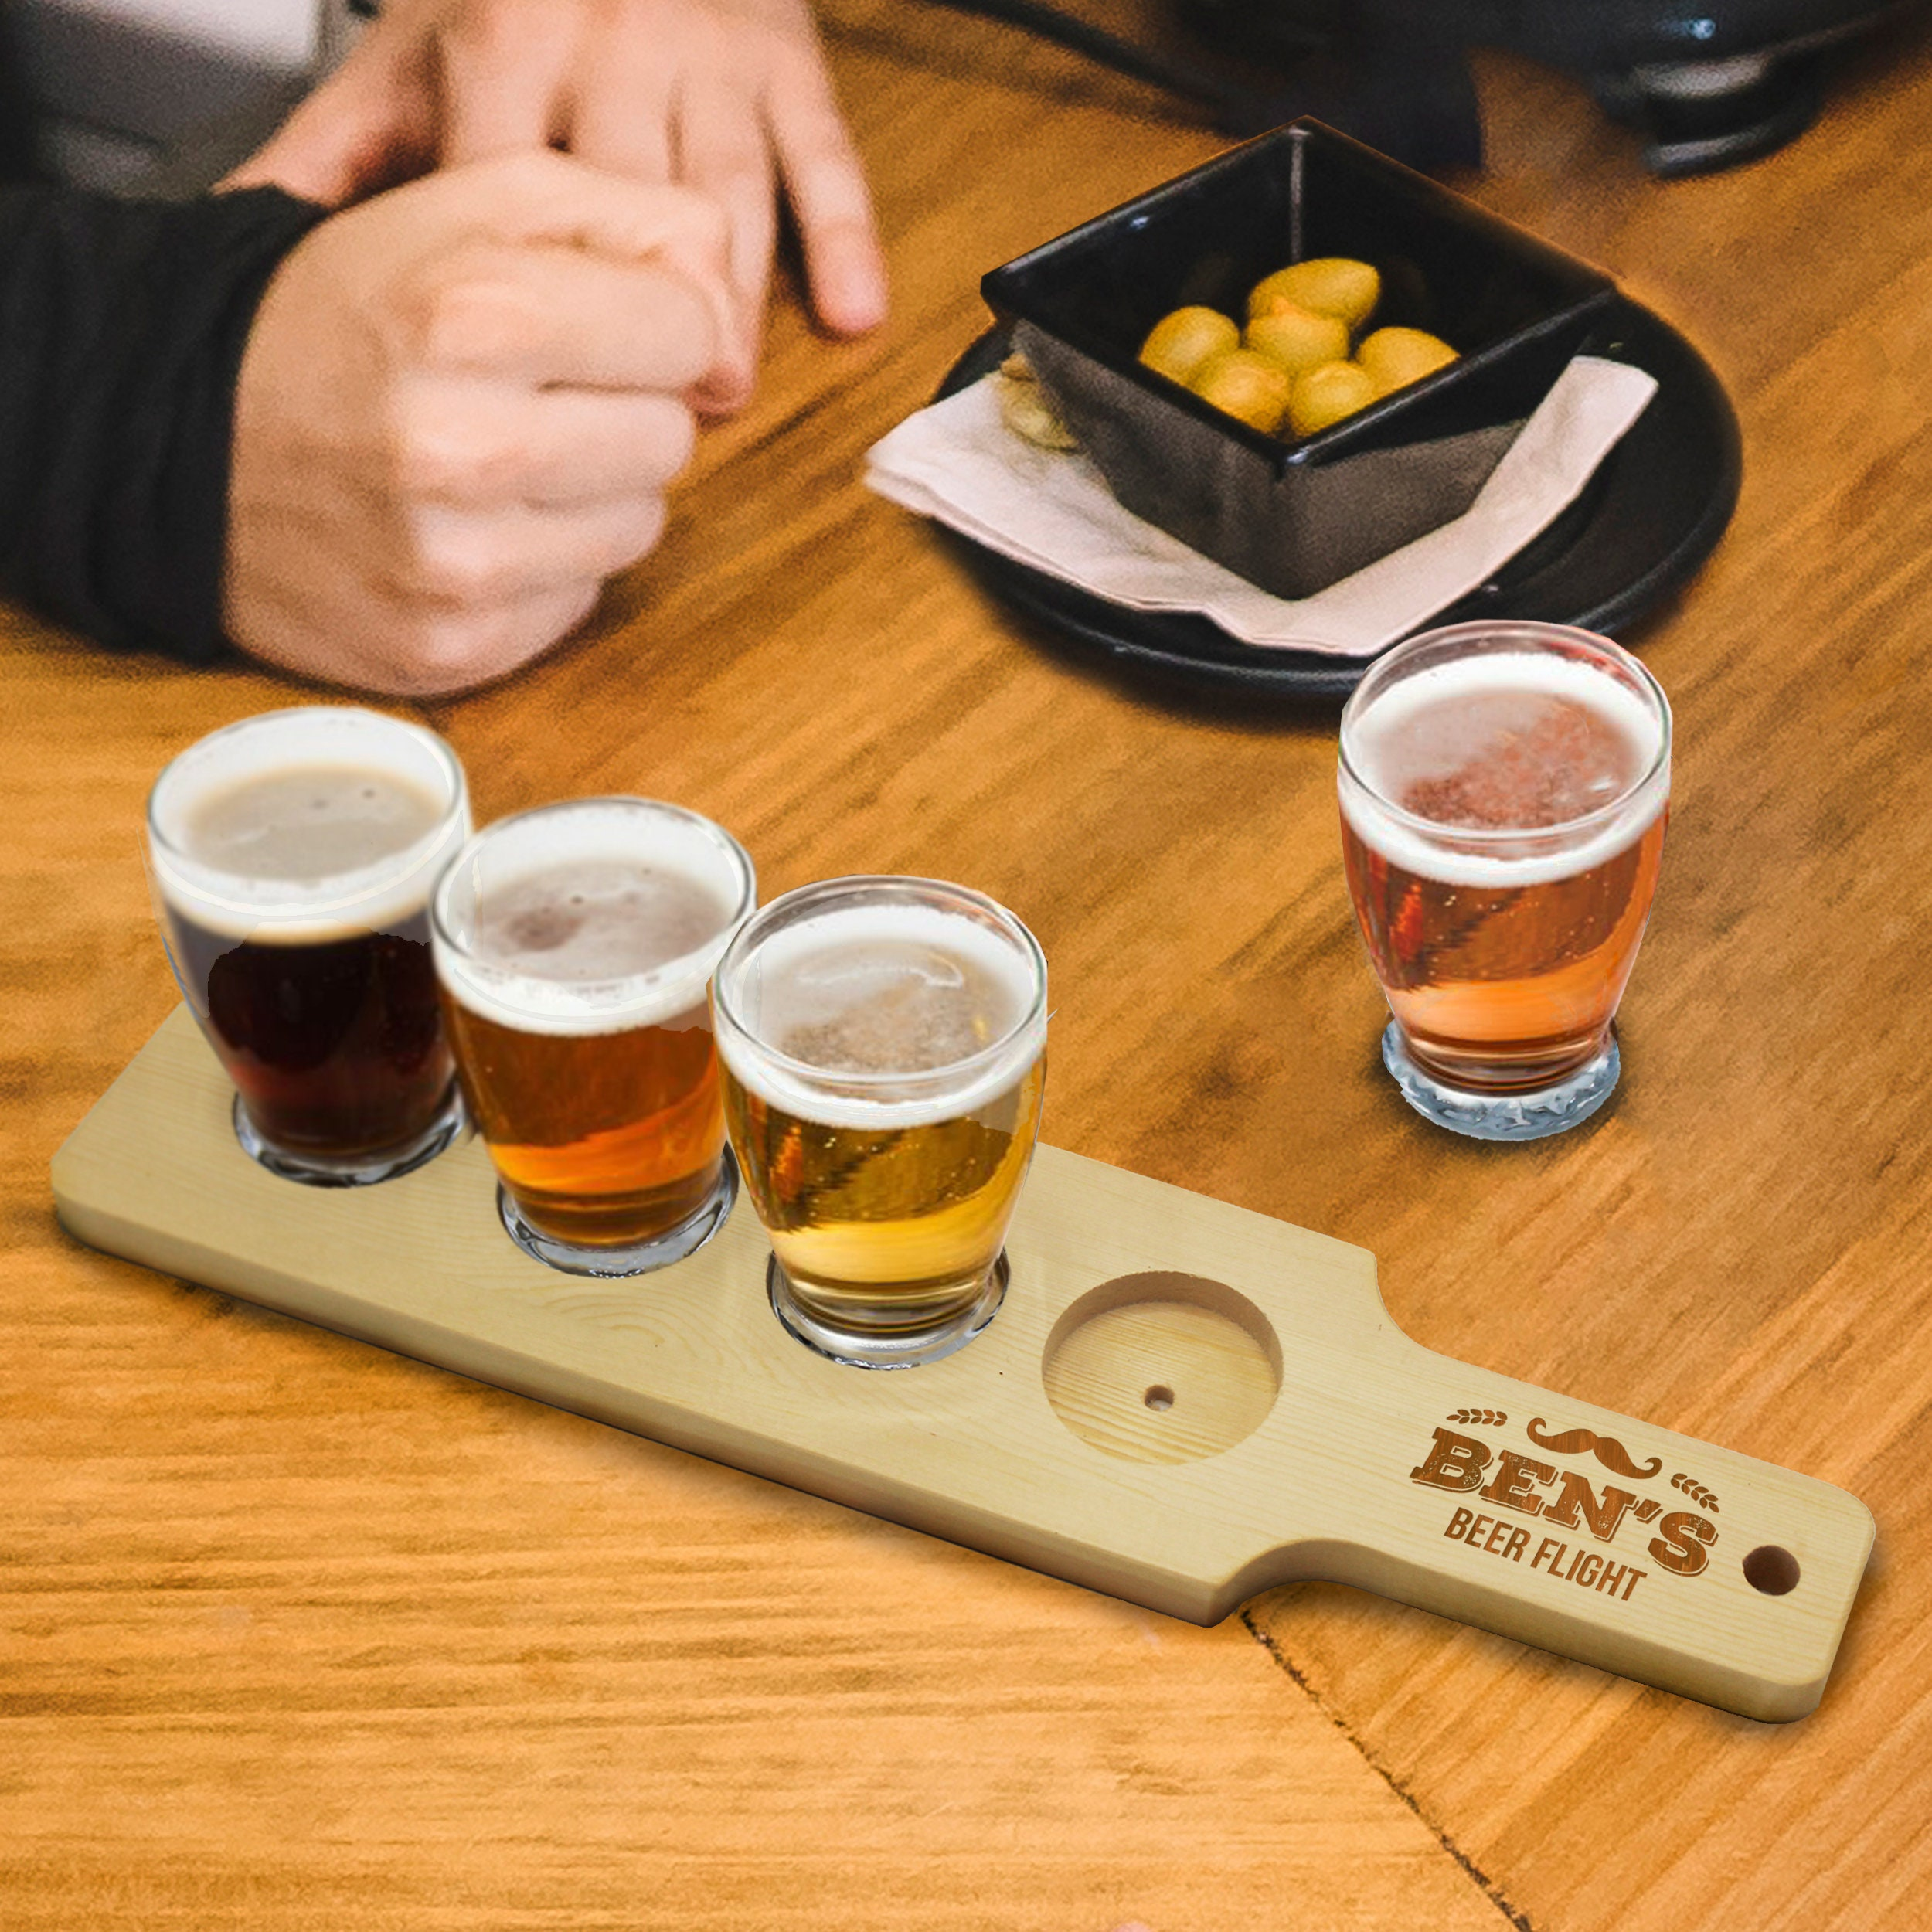 Mr And Mrs Paddle Questions: Personalized Beer Flight Set Beer Paddle And 4 Beer